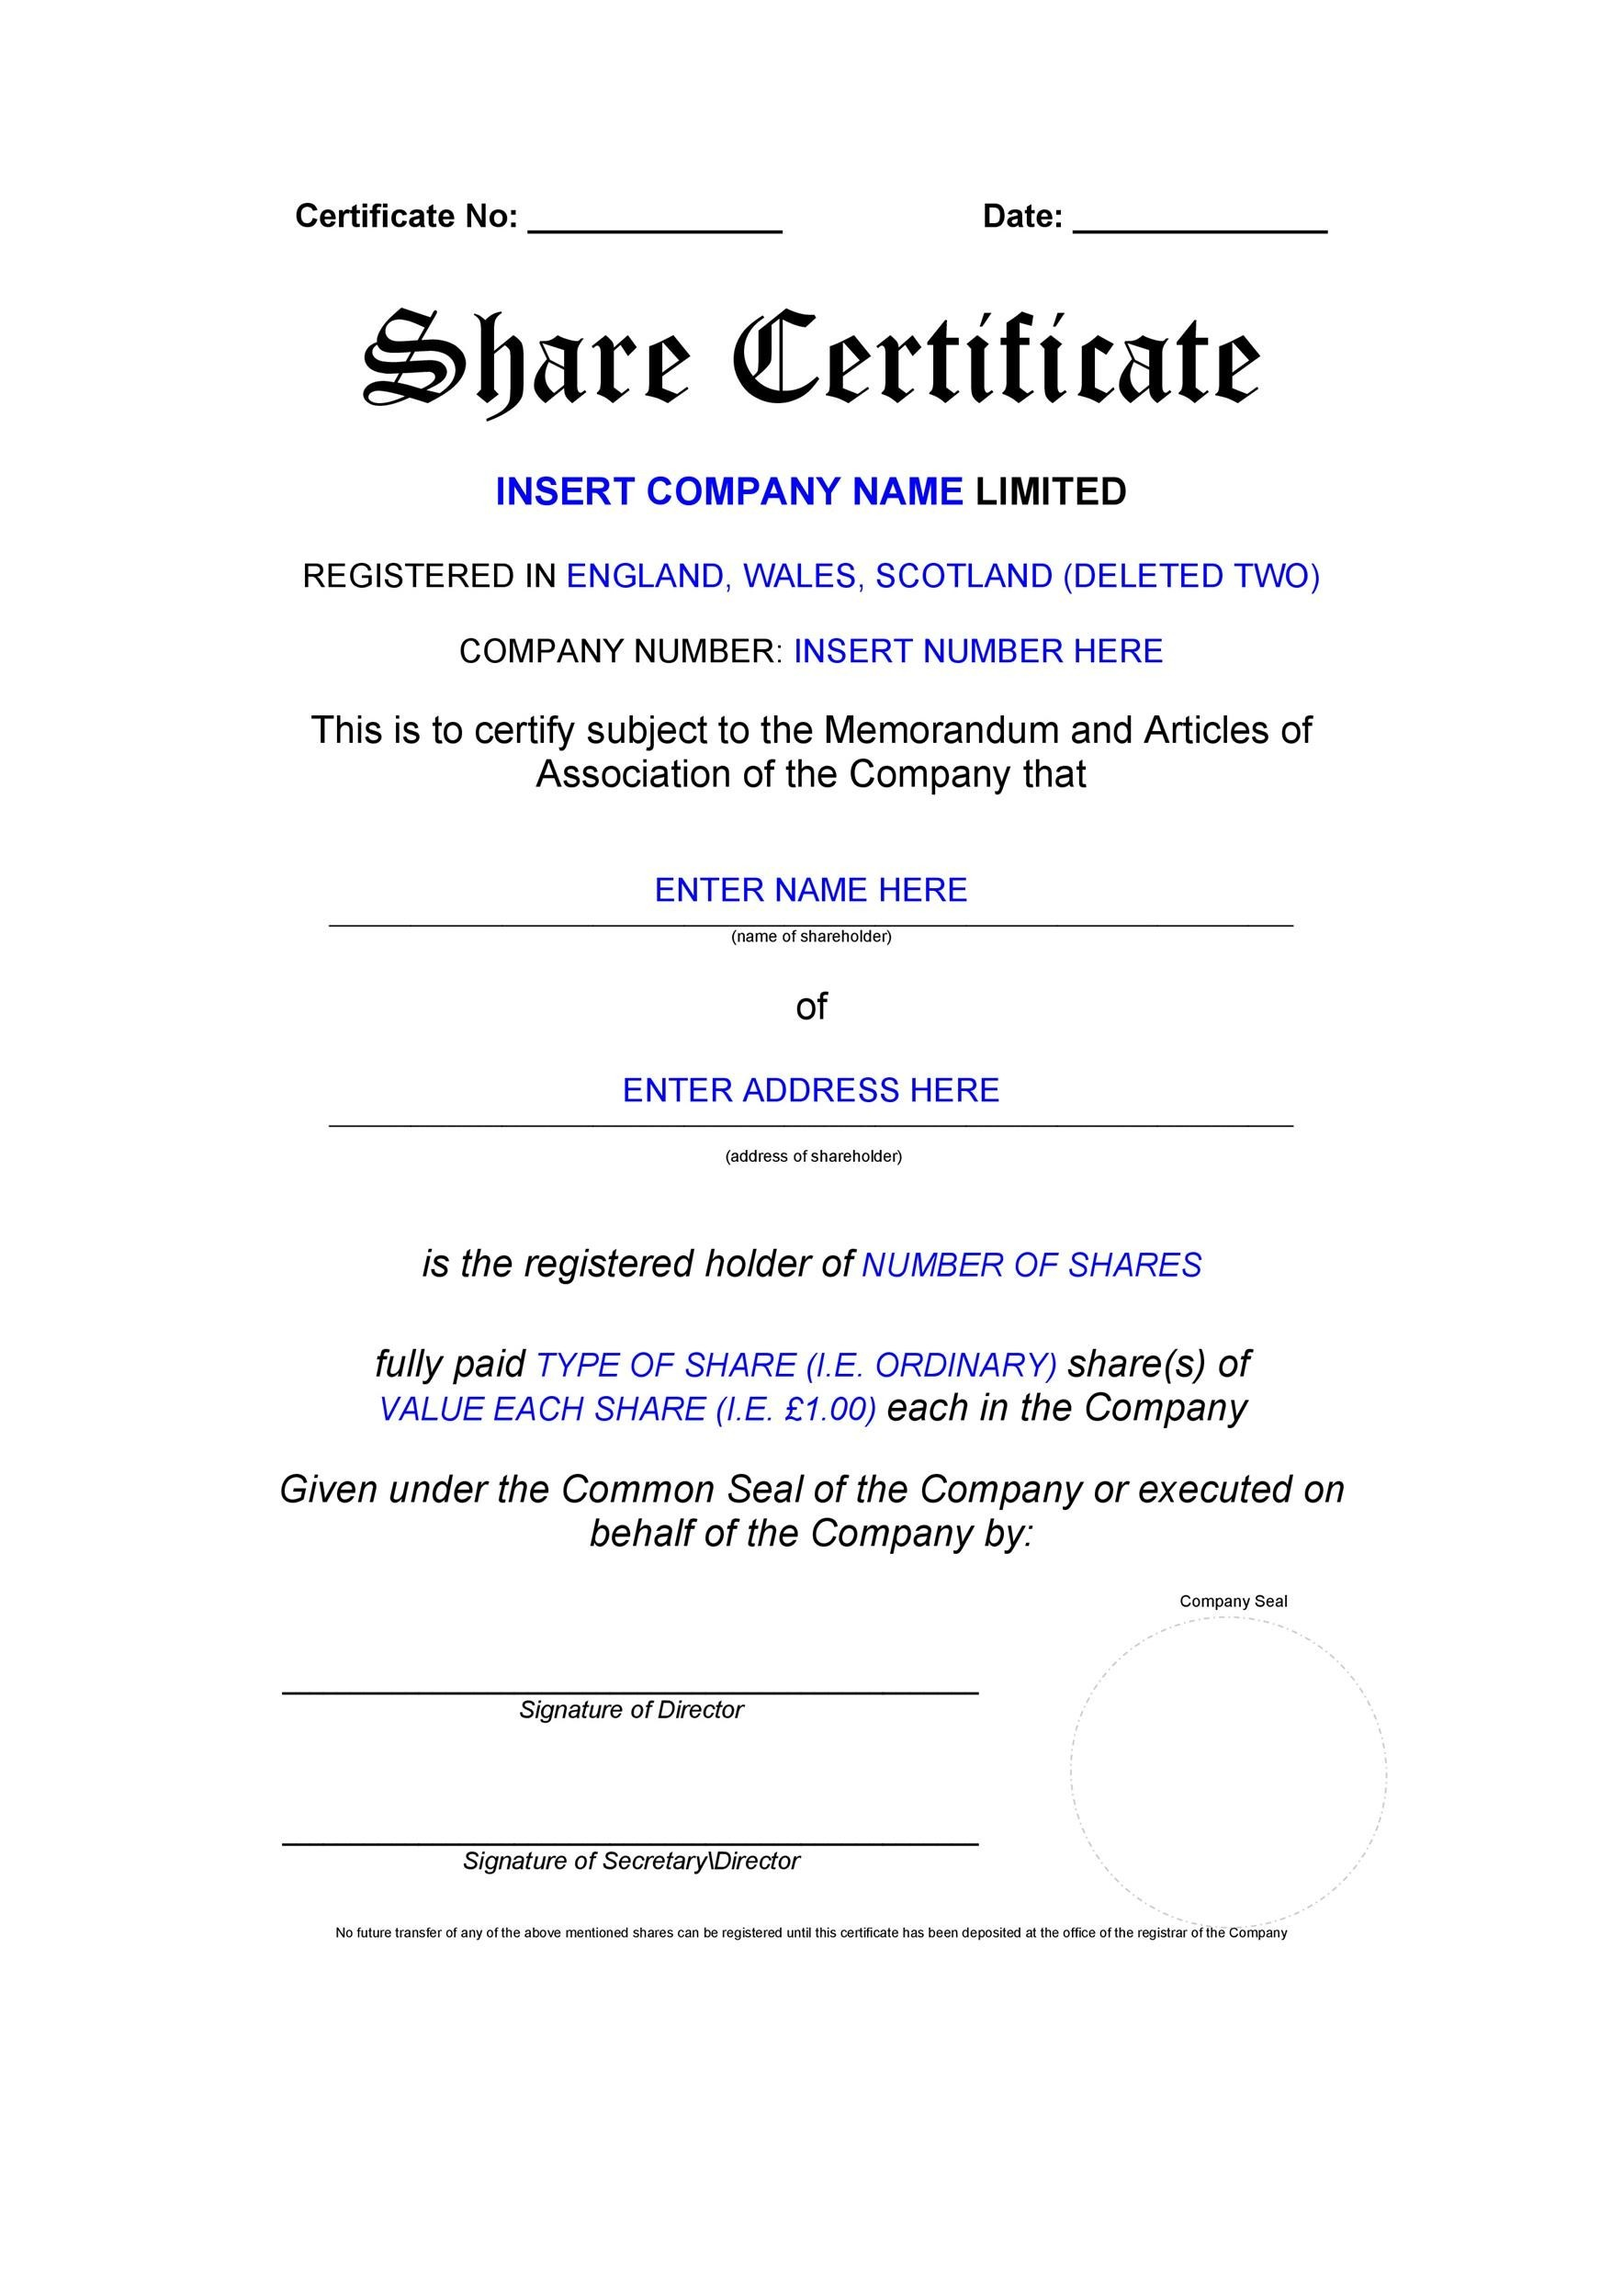 40 free stock certificate templates word pdf template lab printable stock certificate template 40 yelopaper